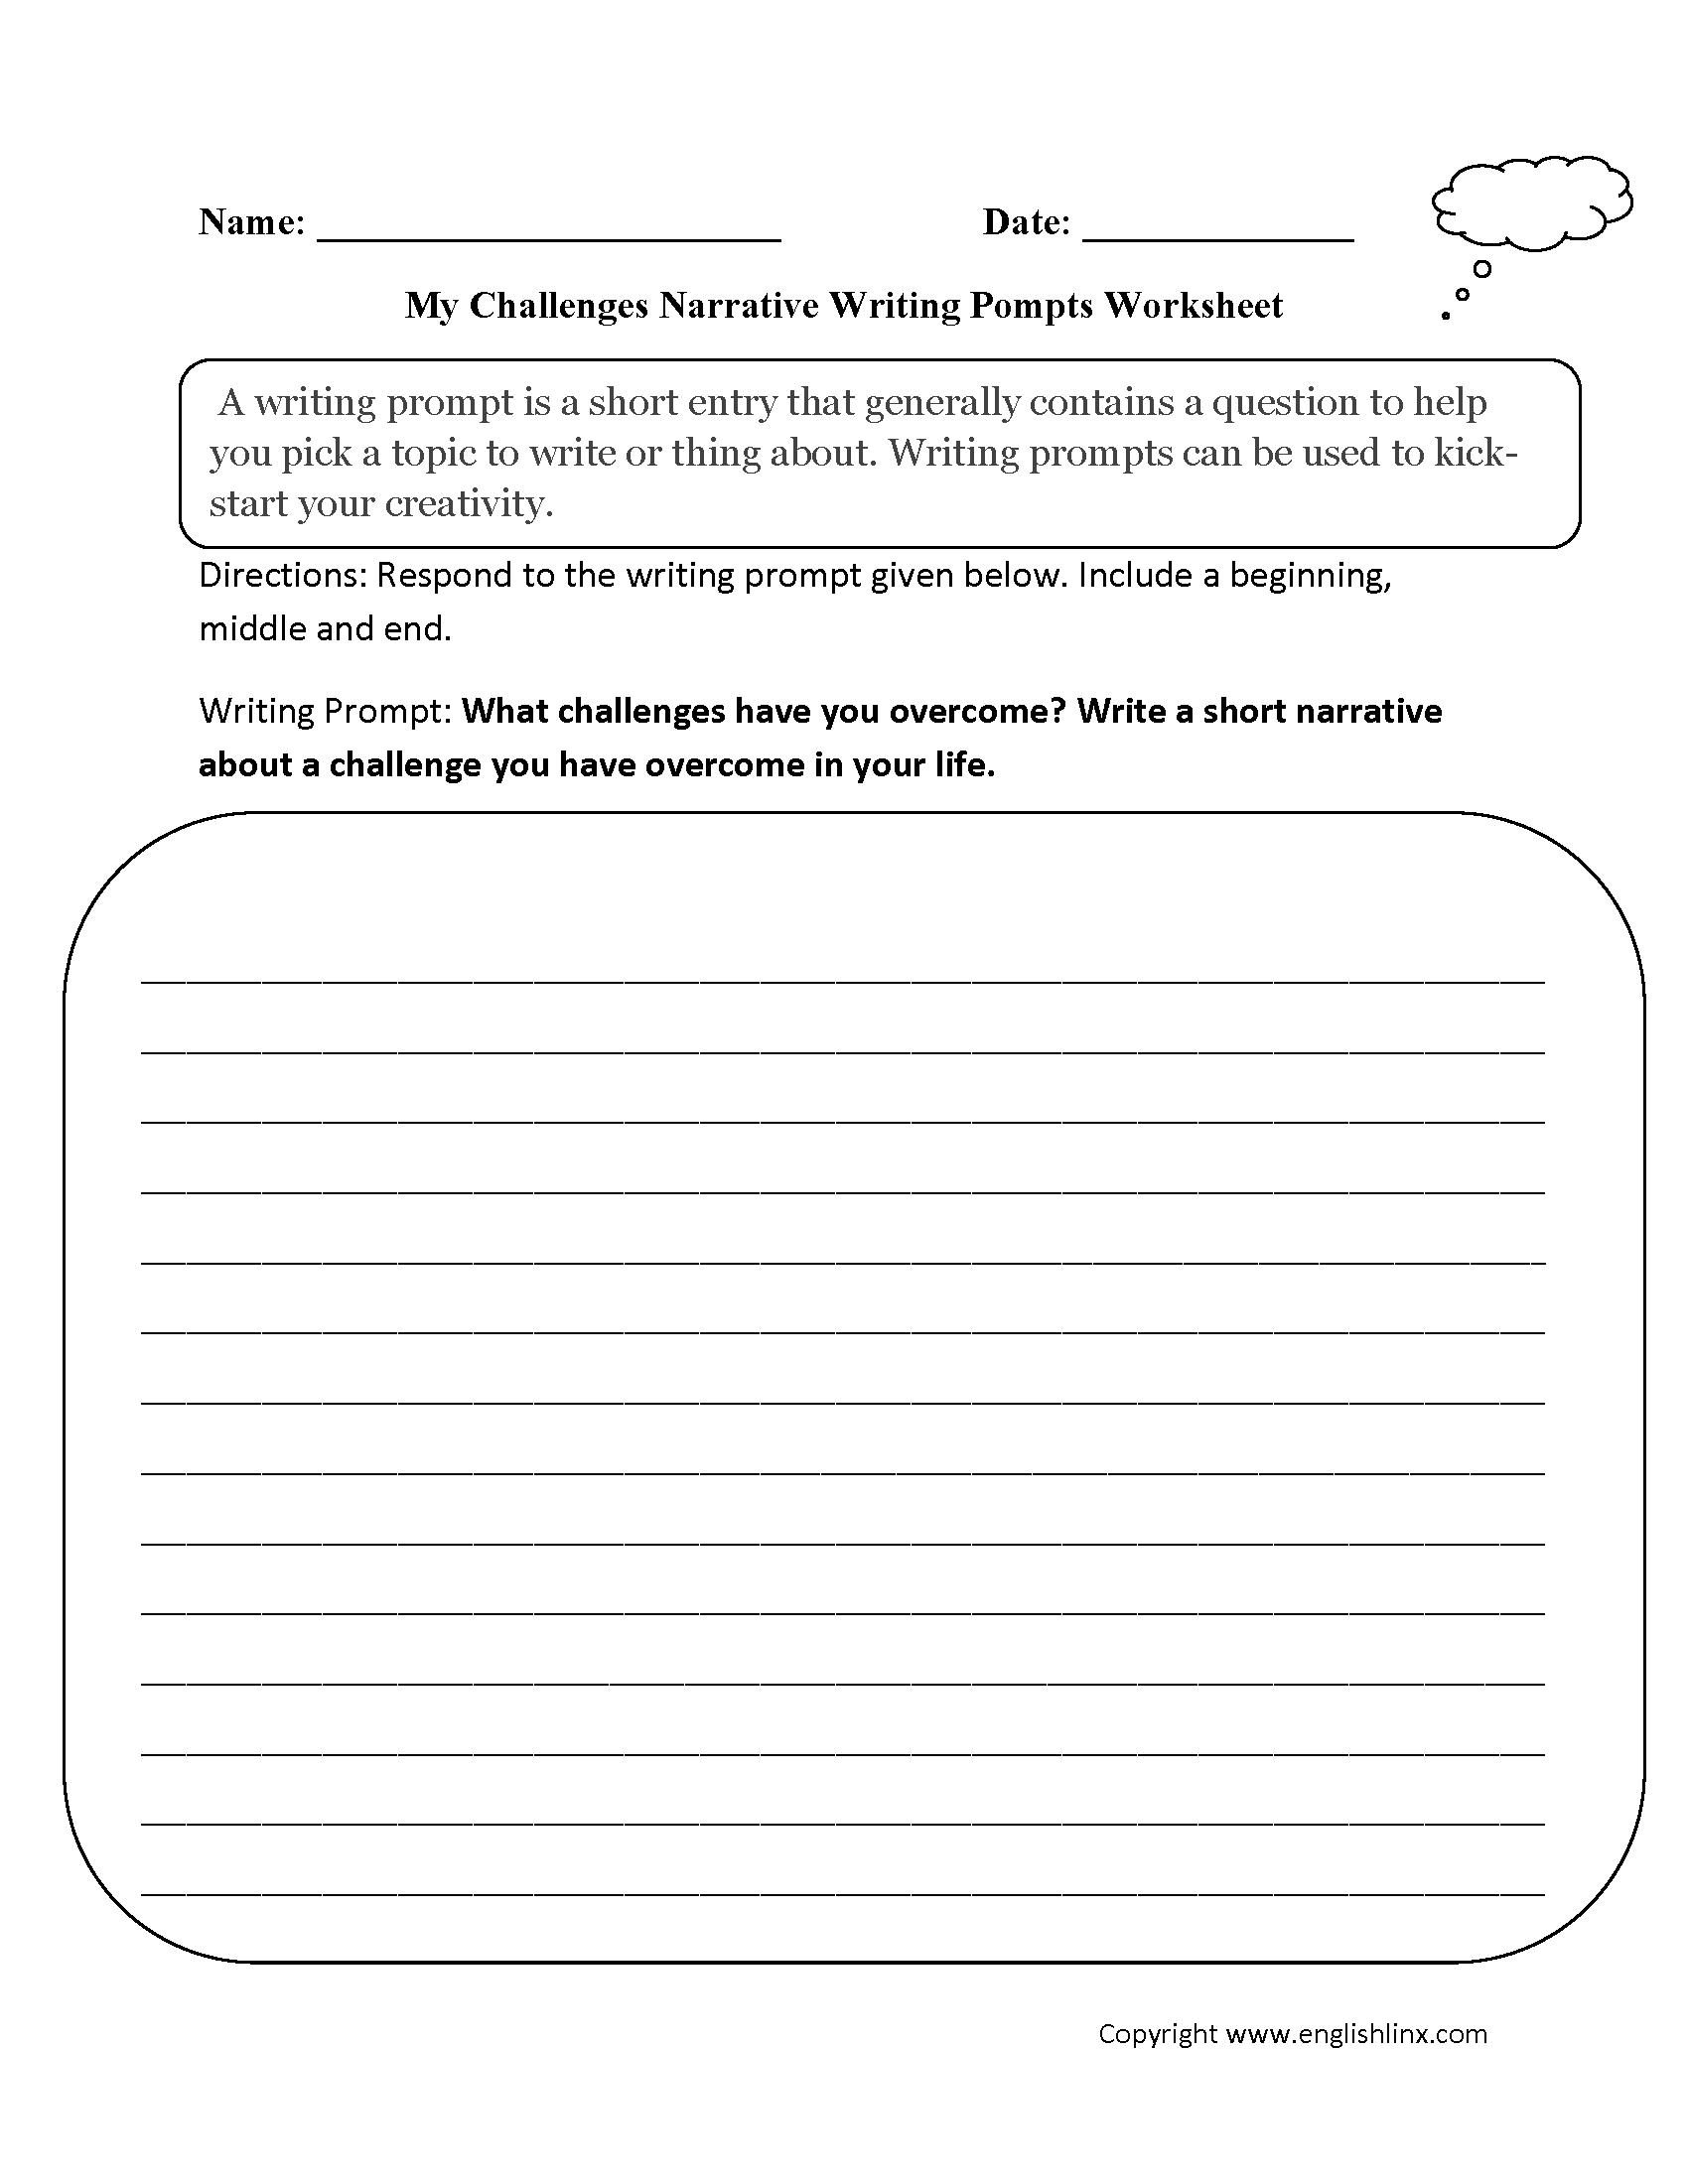 hight resolution of Writing Prompts Worksheets   Narrative Writing Prompts Worksheets